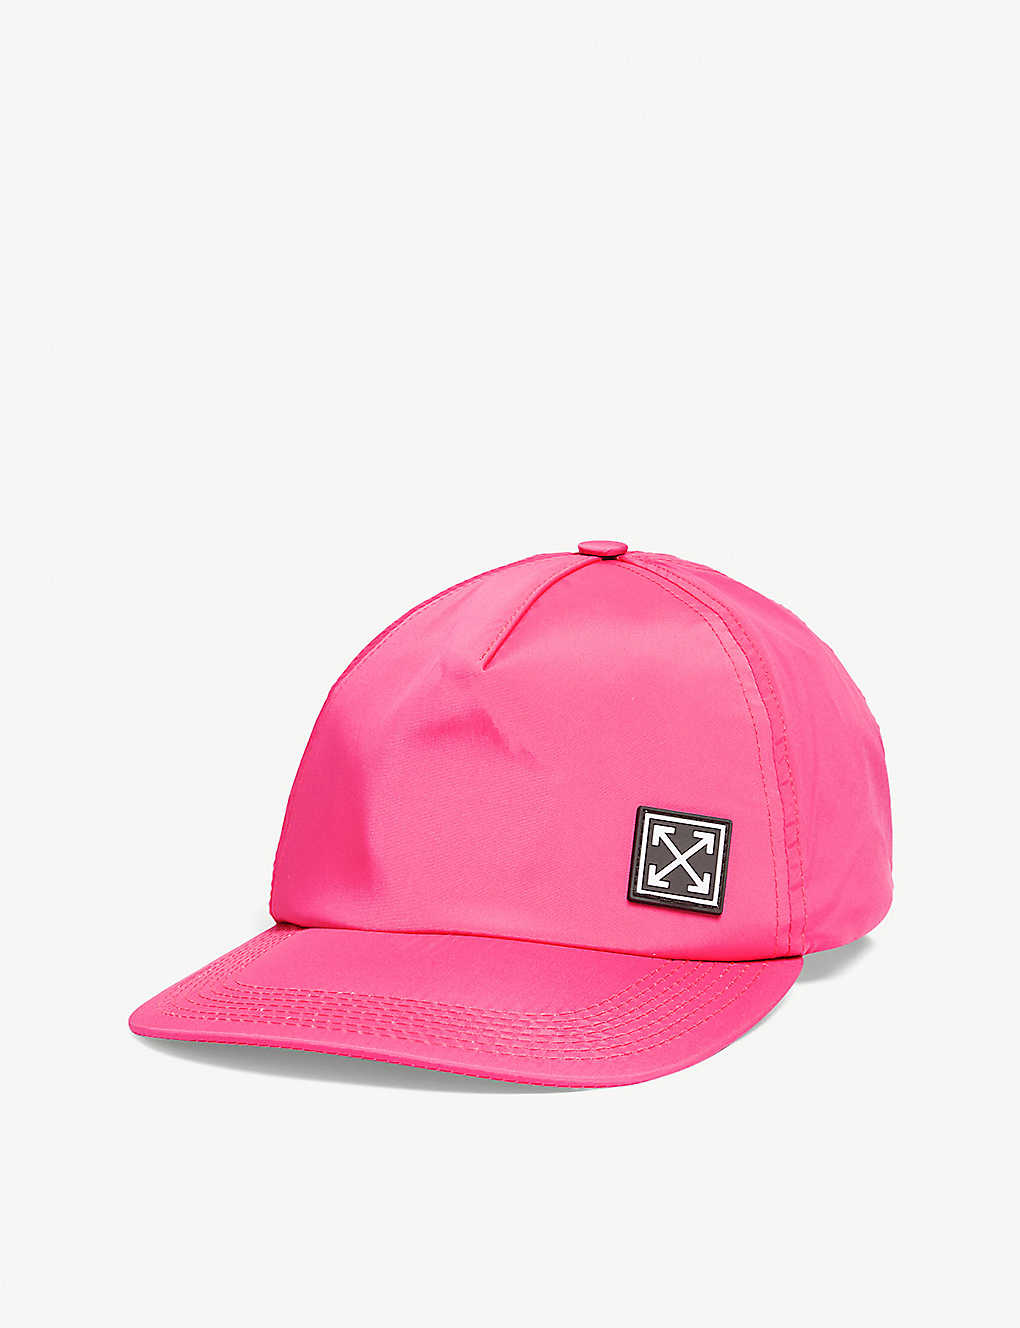 c01ab13bd59 OFF-WHITE C O VIRGIL ABLOH - Stretch baseball cap